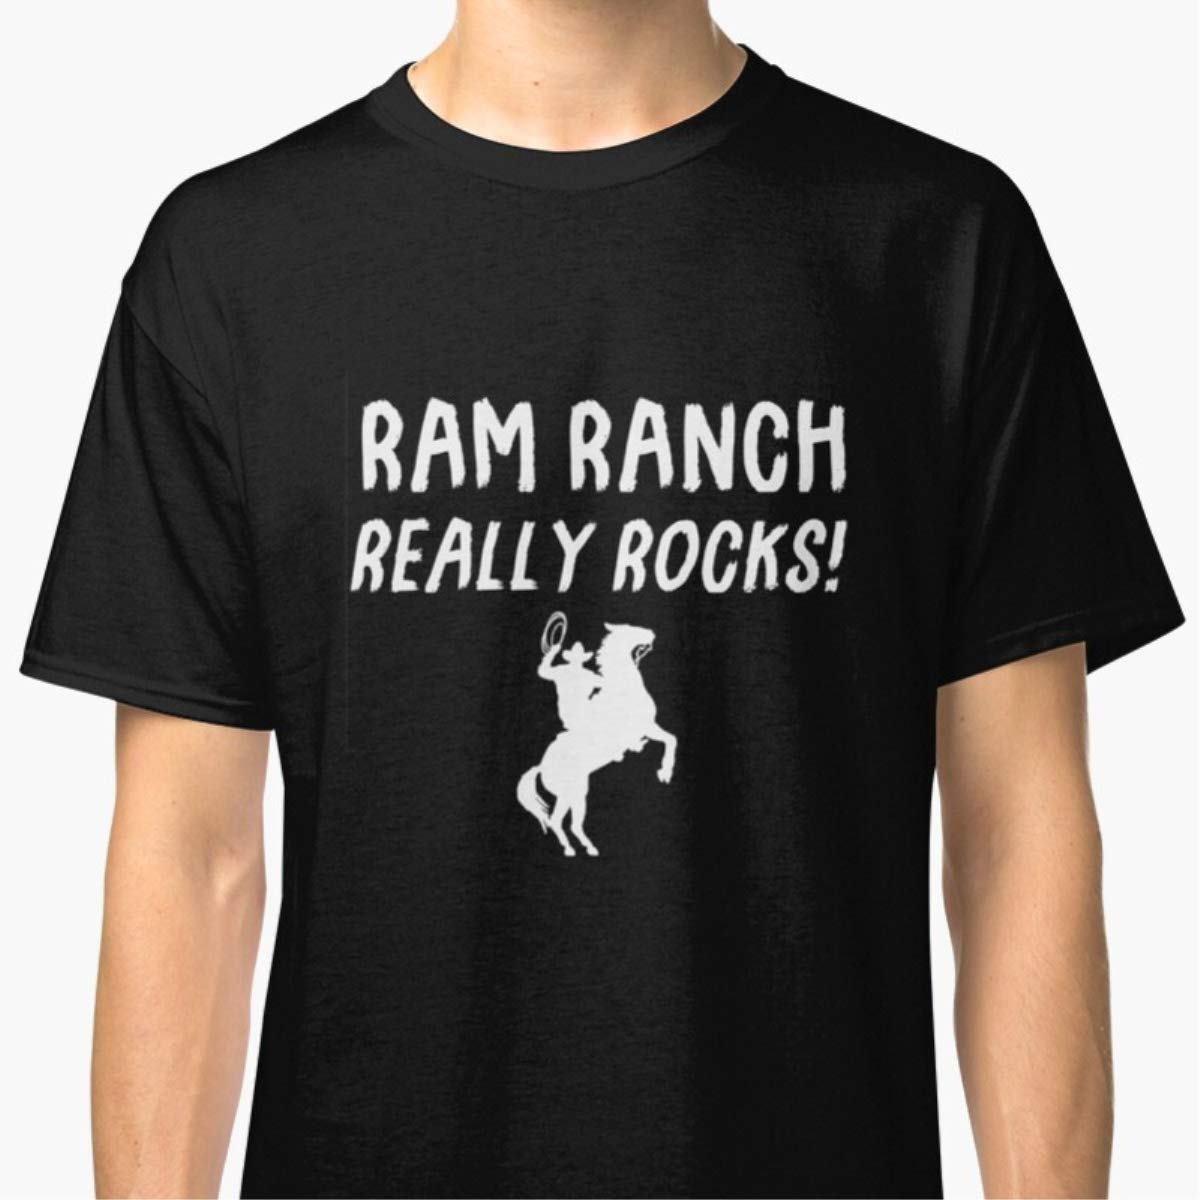 Unisex T-Shirt Ram Ranch Really Rocks Shirts For Men Women Gift Friends Mon